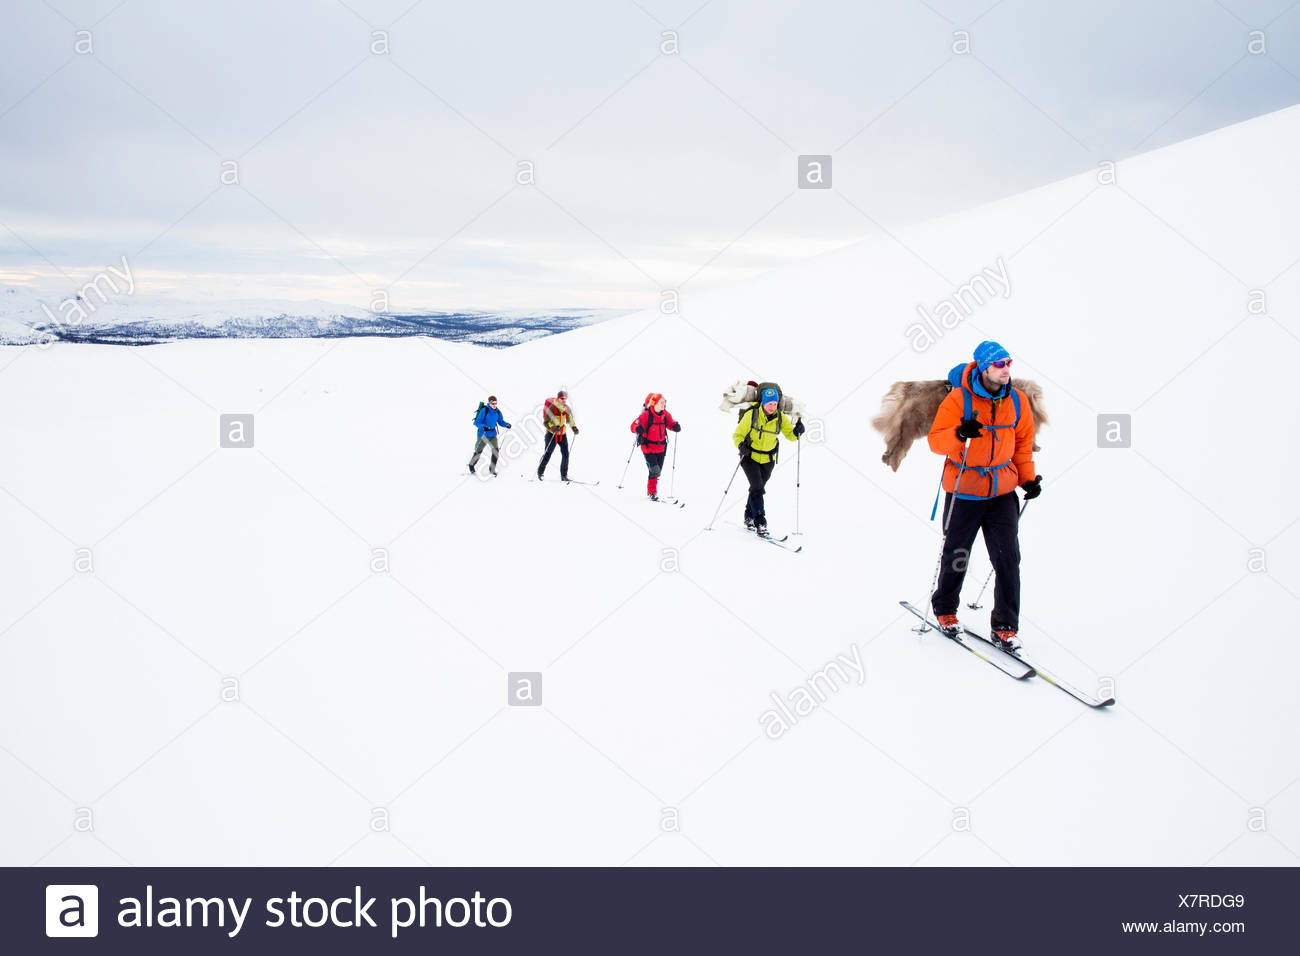 People skiing in mountains - Stock Image